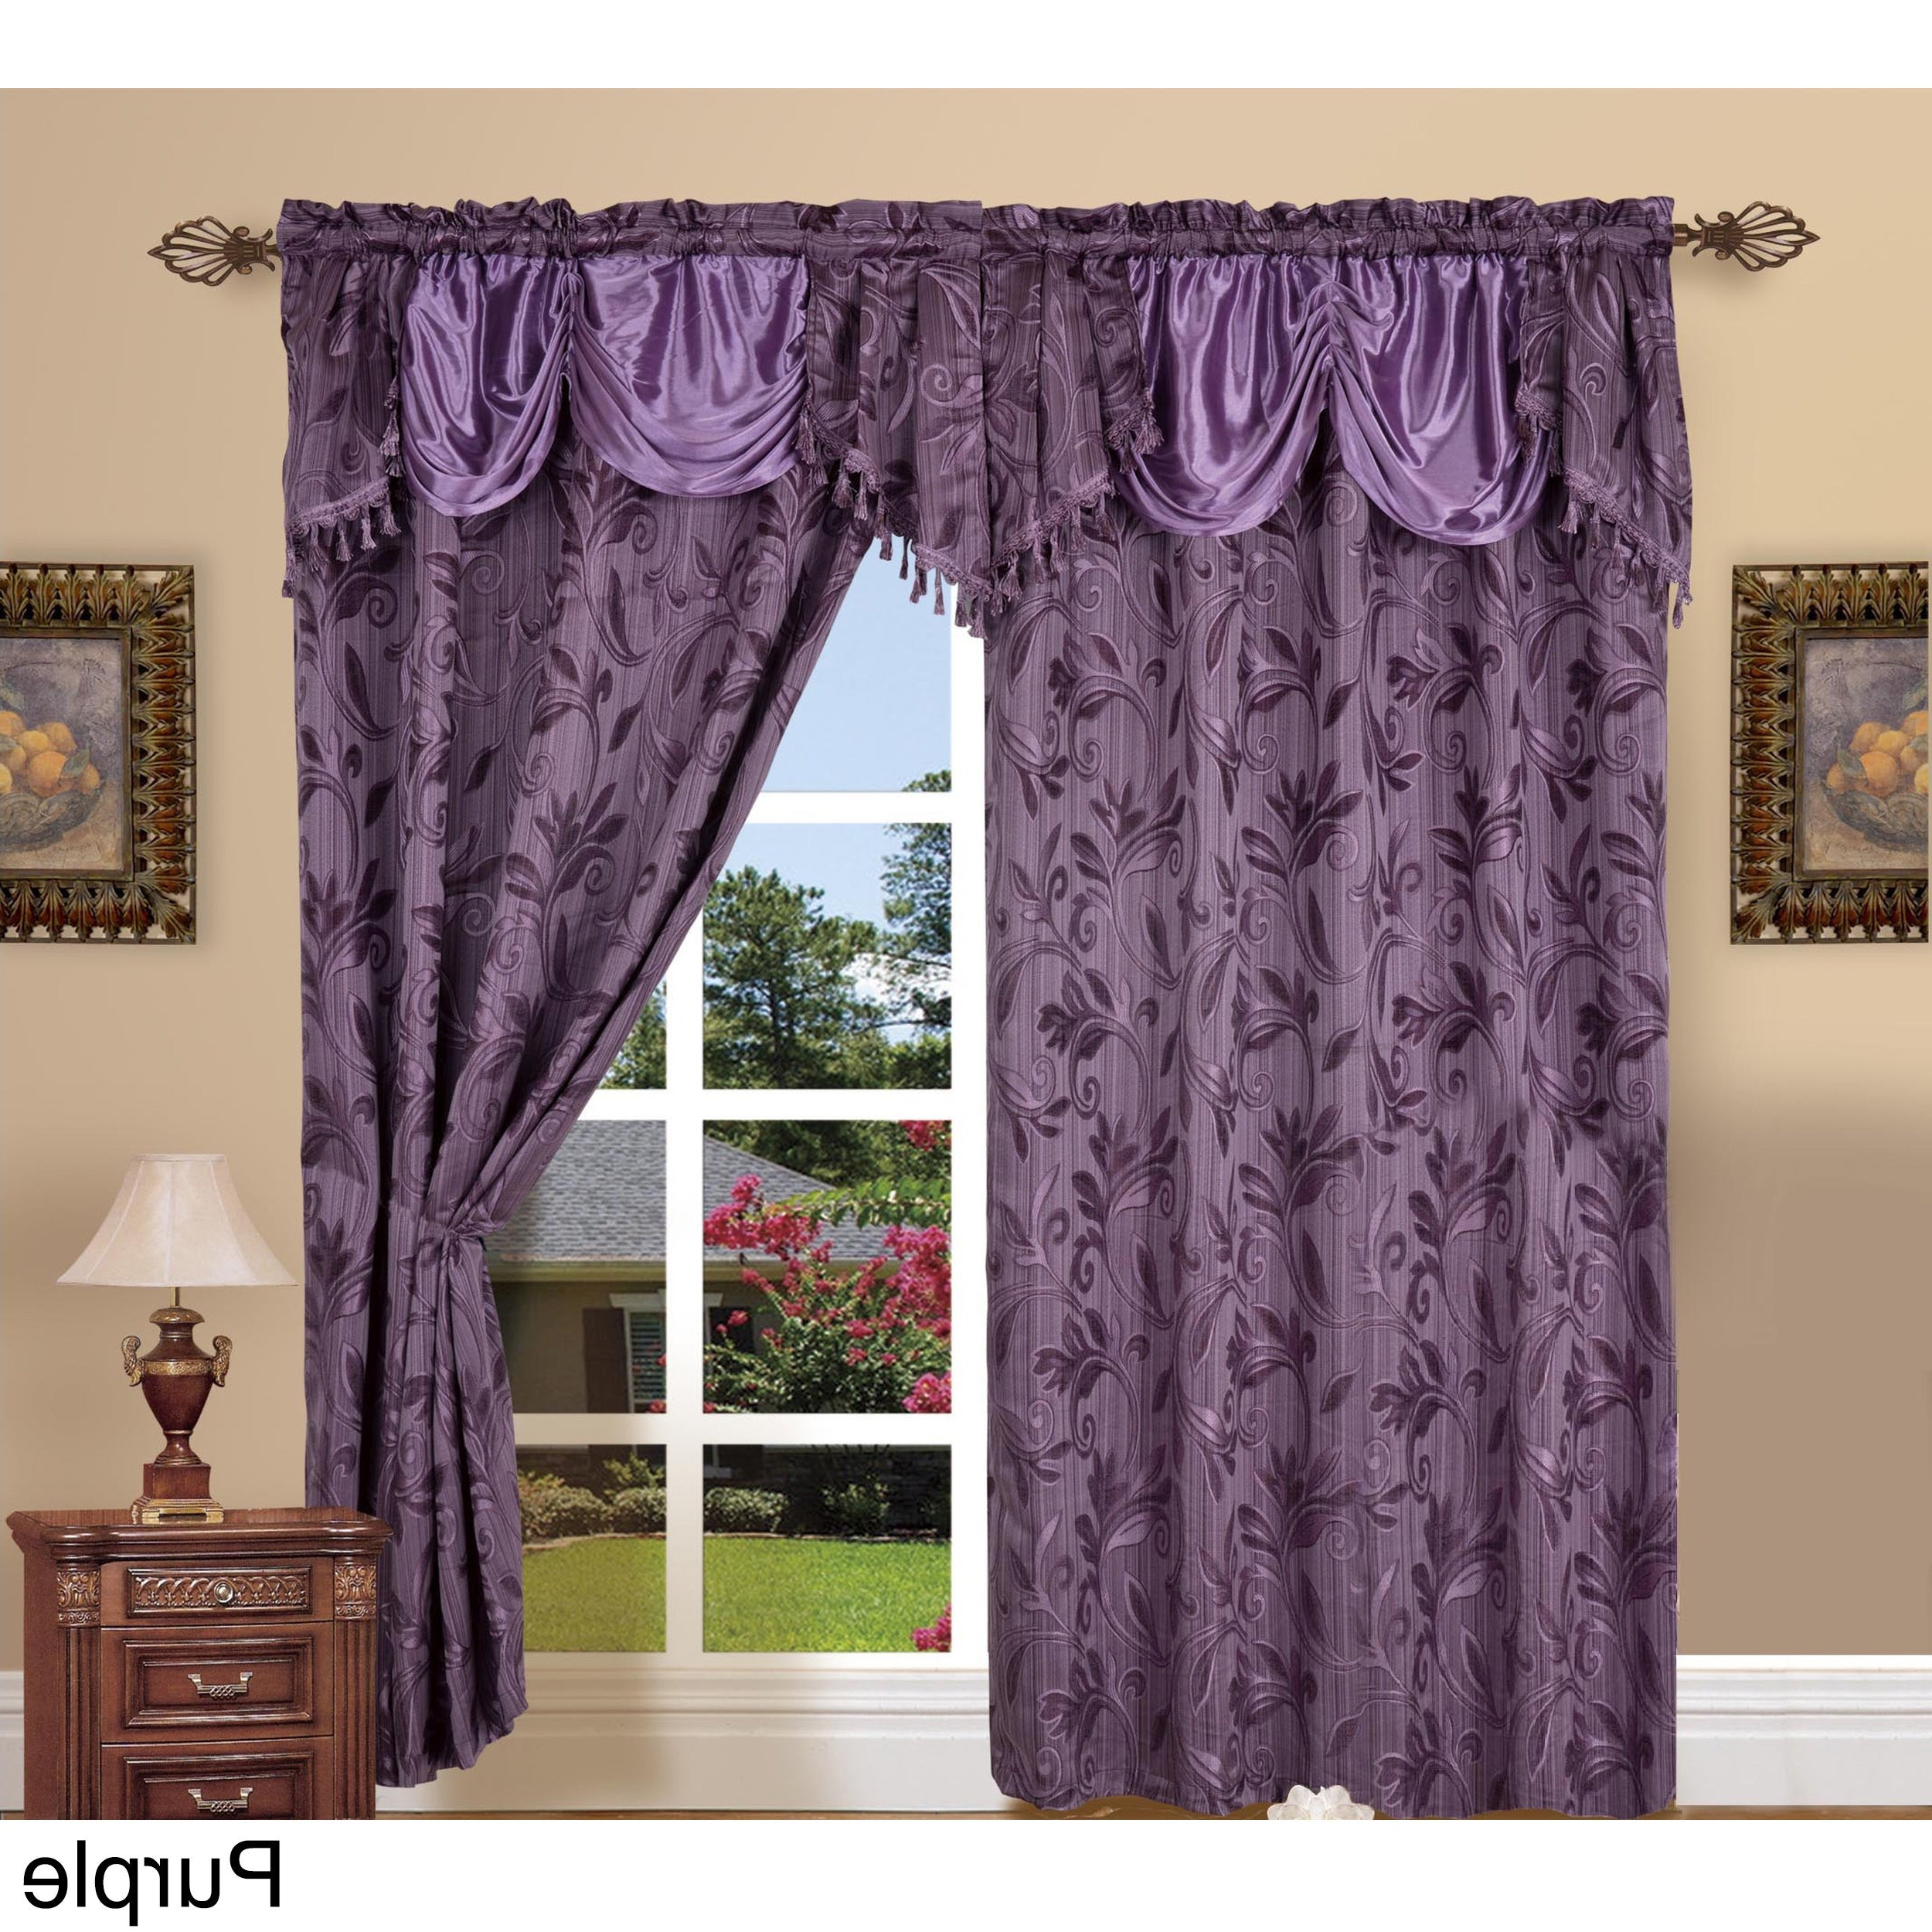 Elegant Comfort Luxury Jacquard Rod Pocket 54 Inch Window Curtain Panel Pair Intended For Favorite Elegant Comfort Window Sheer Curtain Panel Pairs (Gallery 15 of 20)